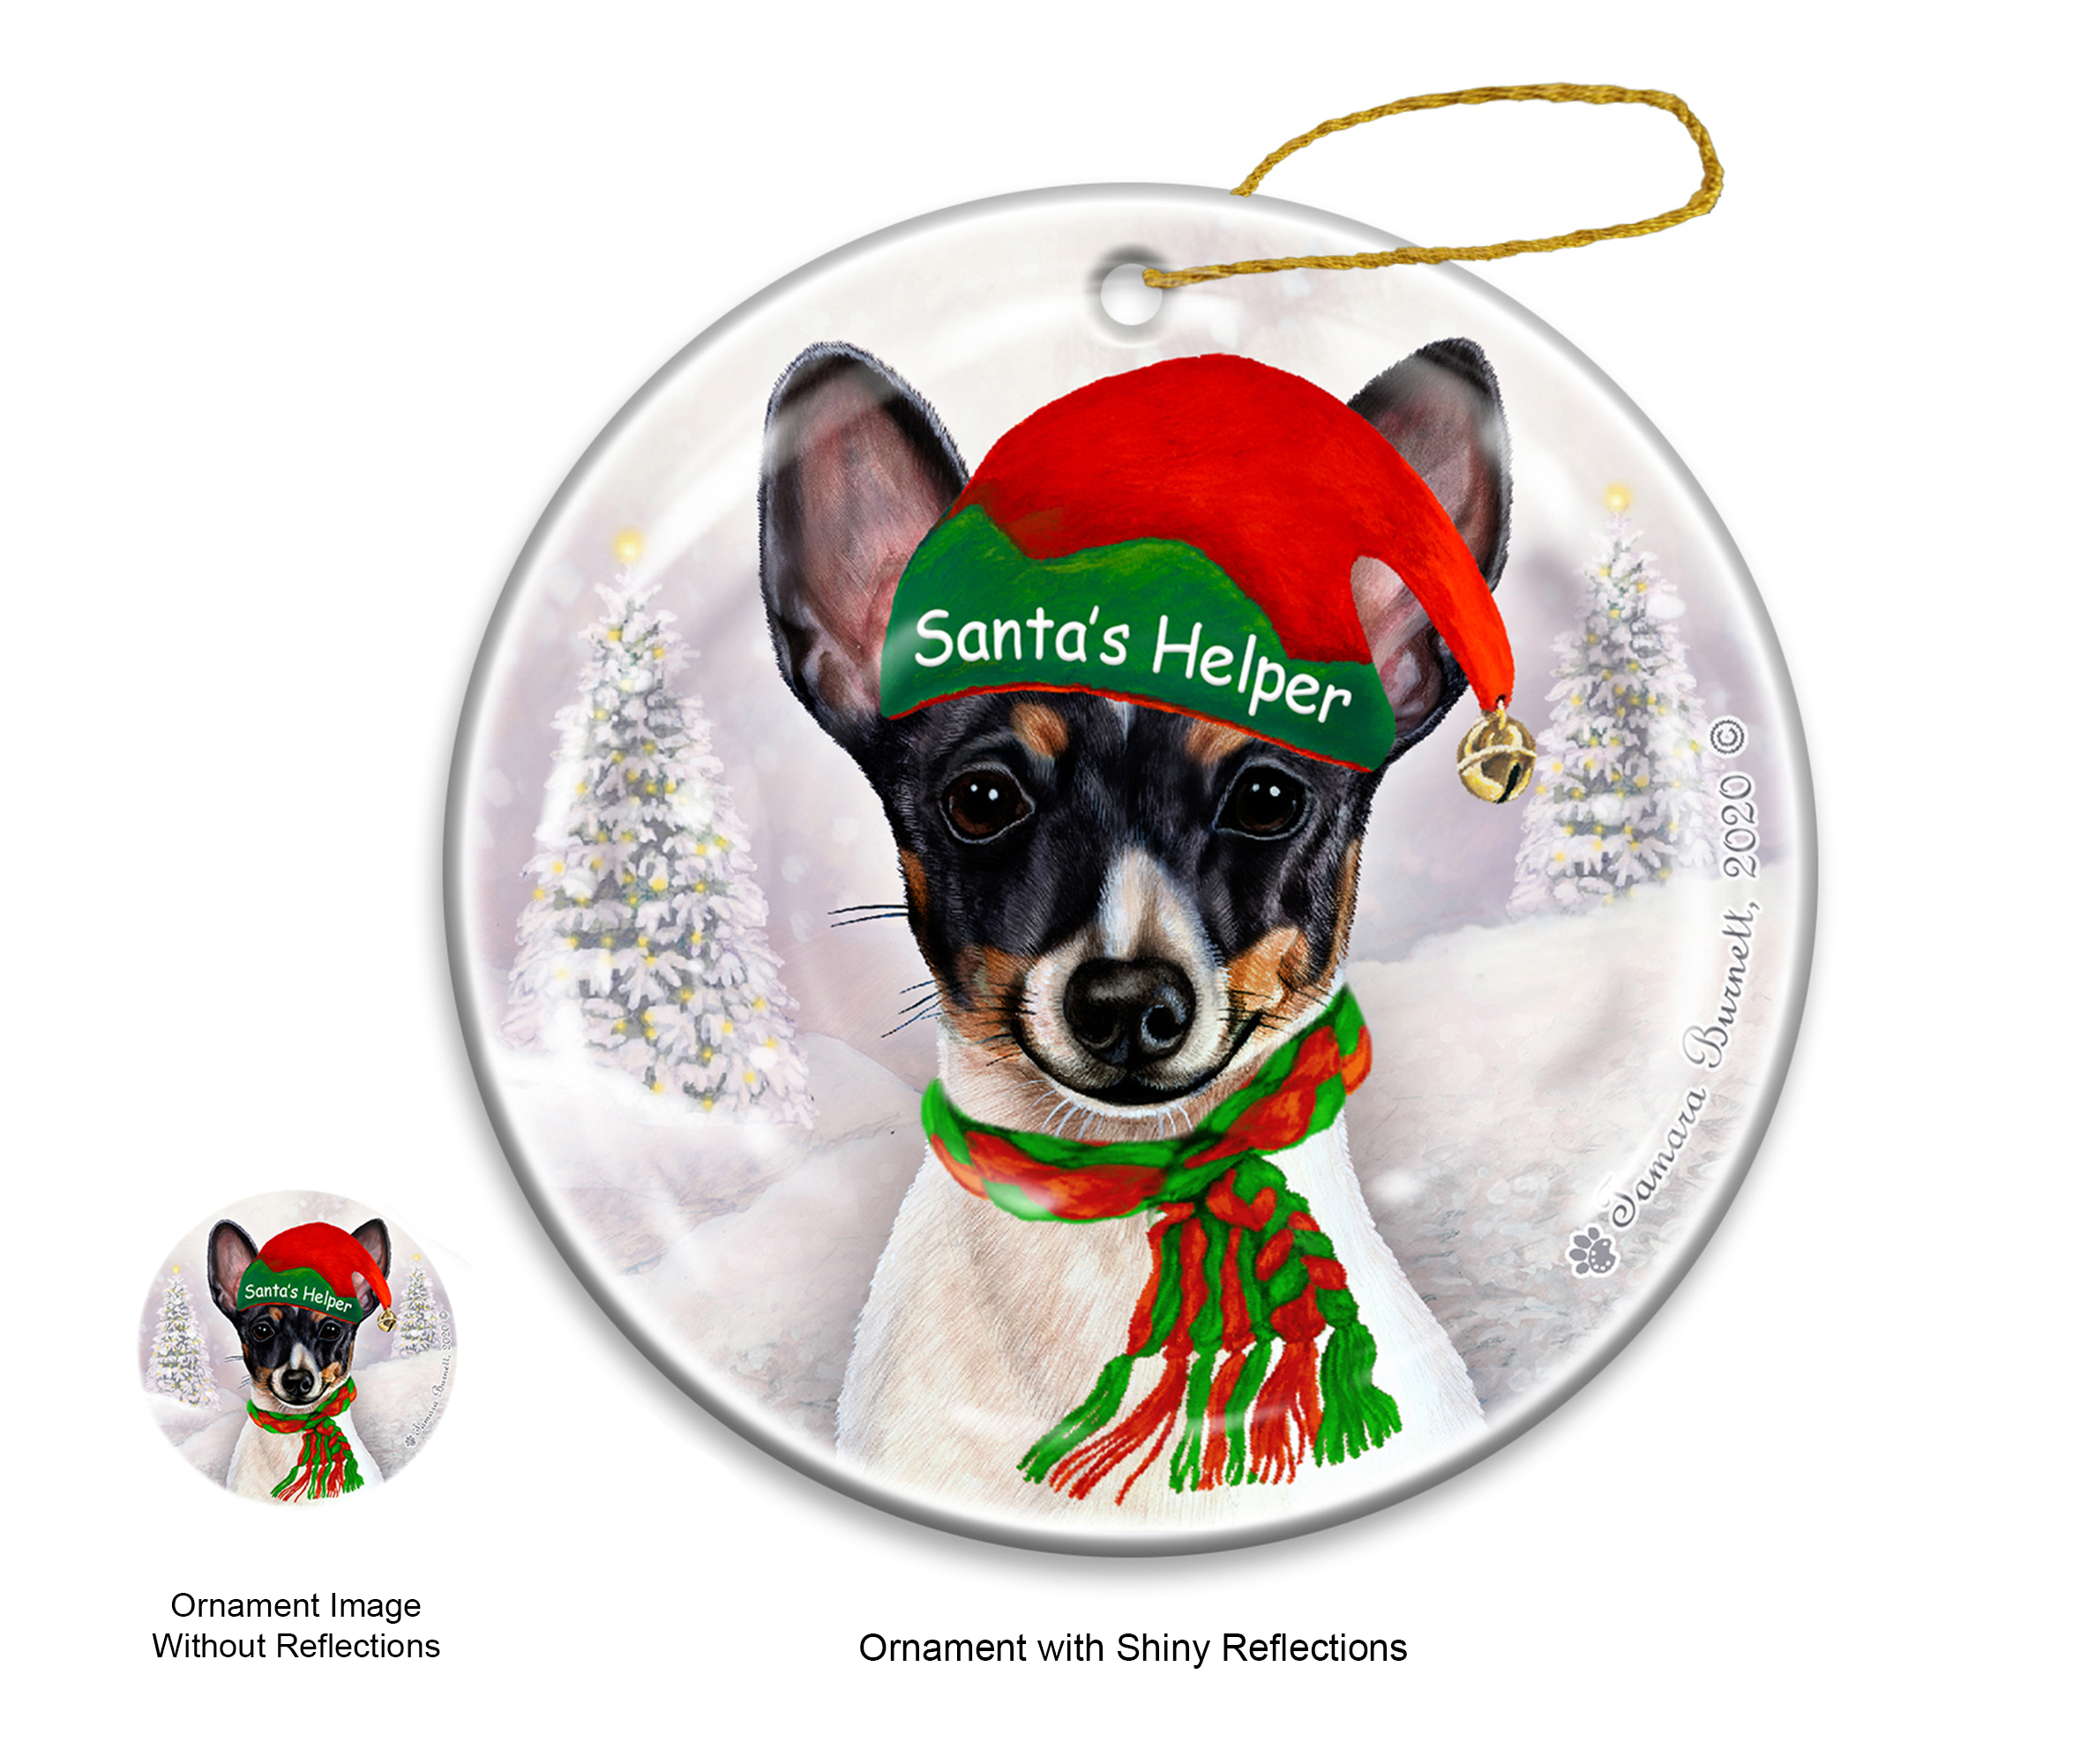 An image of the Toy Fox Terrier Blk Tri - Santa's Helper Ornament